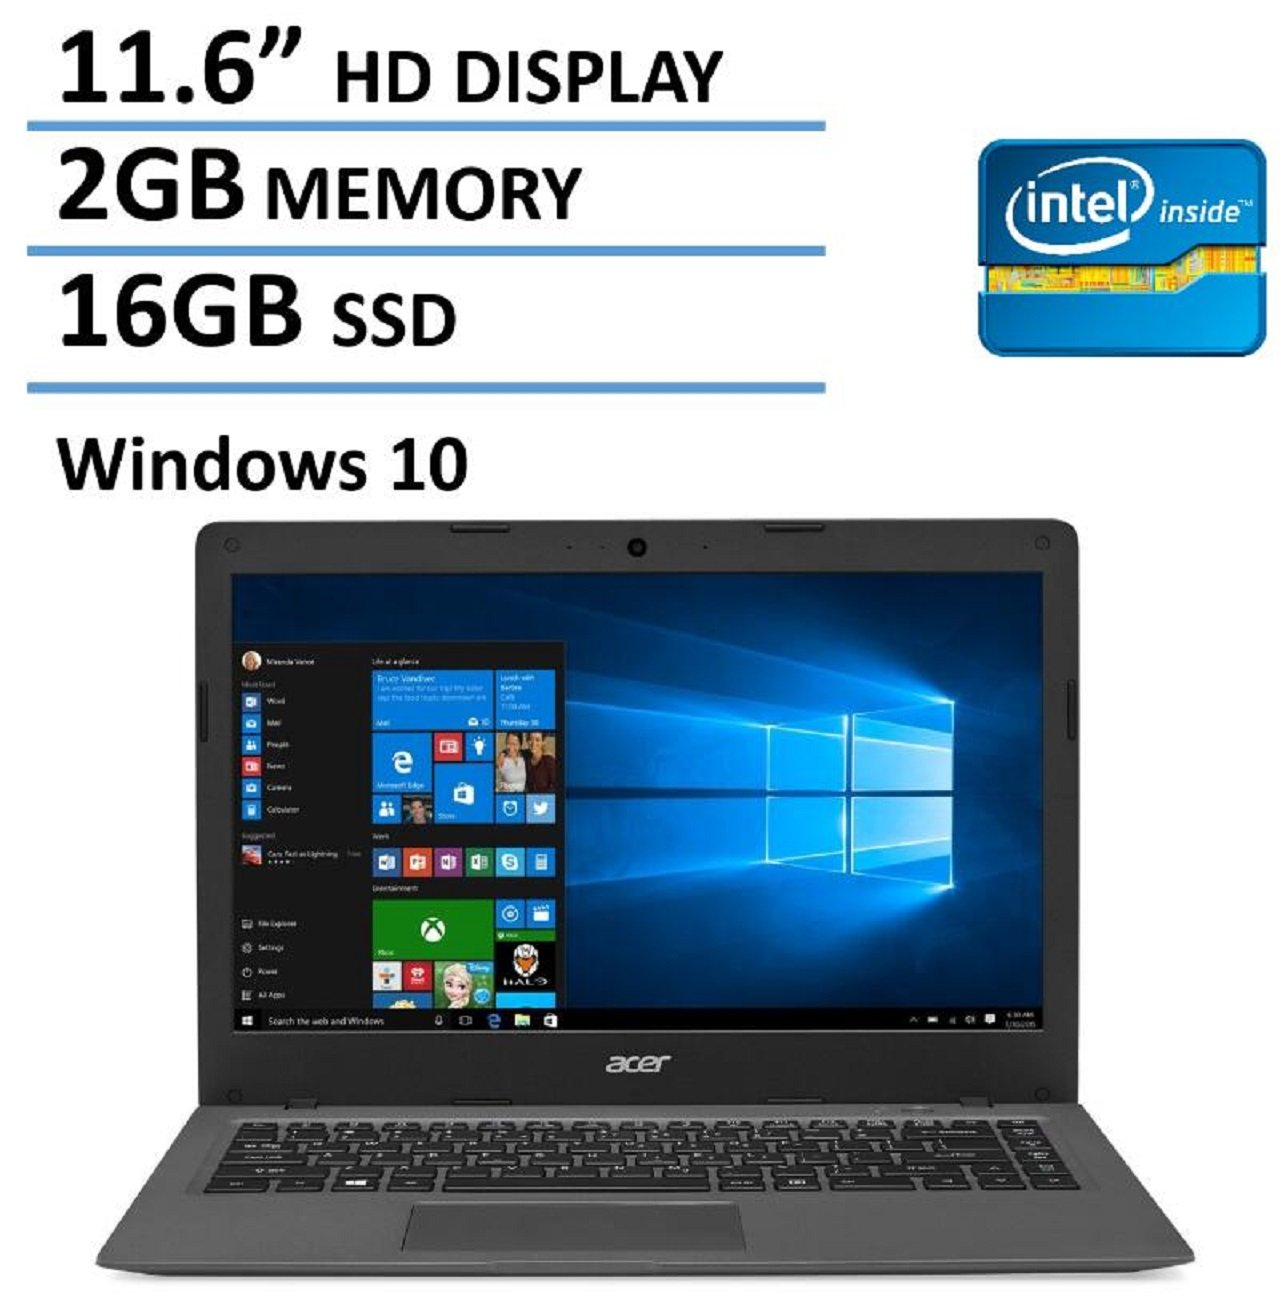 2016 NEW Edition Acer Aspire One 11 Cloudbook 11.6-inch Laptop, Intel Dual-Core Processor, 2GB RAM, 16GB SSD, 100GB OneDrive Cloud Storage 2 years, Bluetooth, HDMI, Windows 10